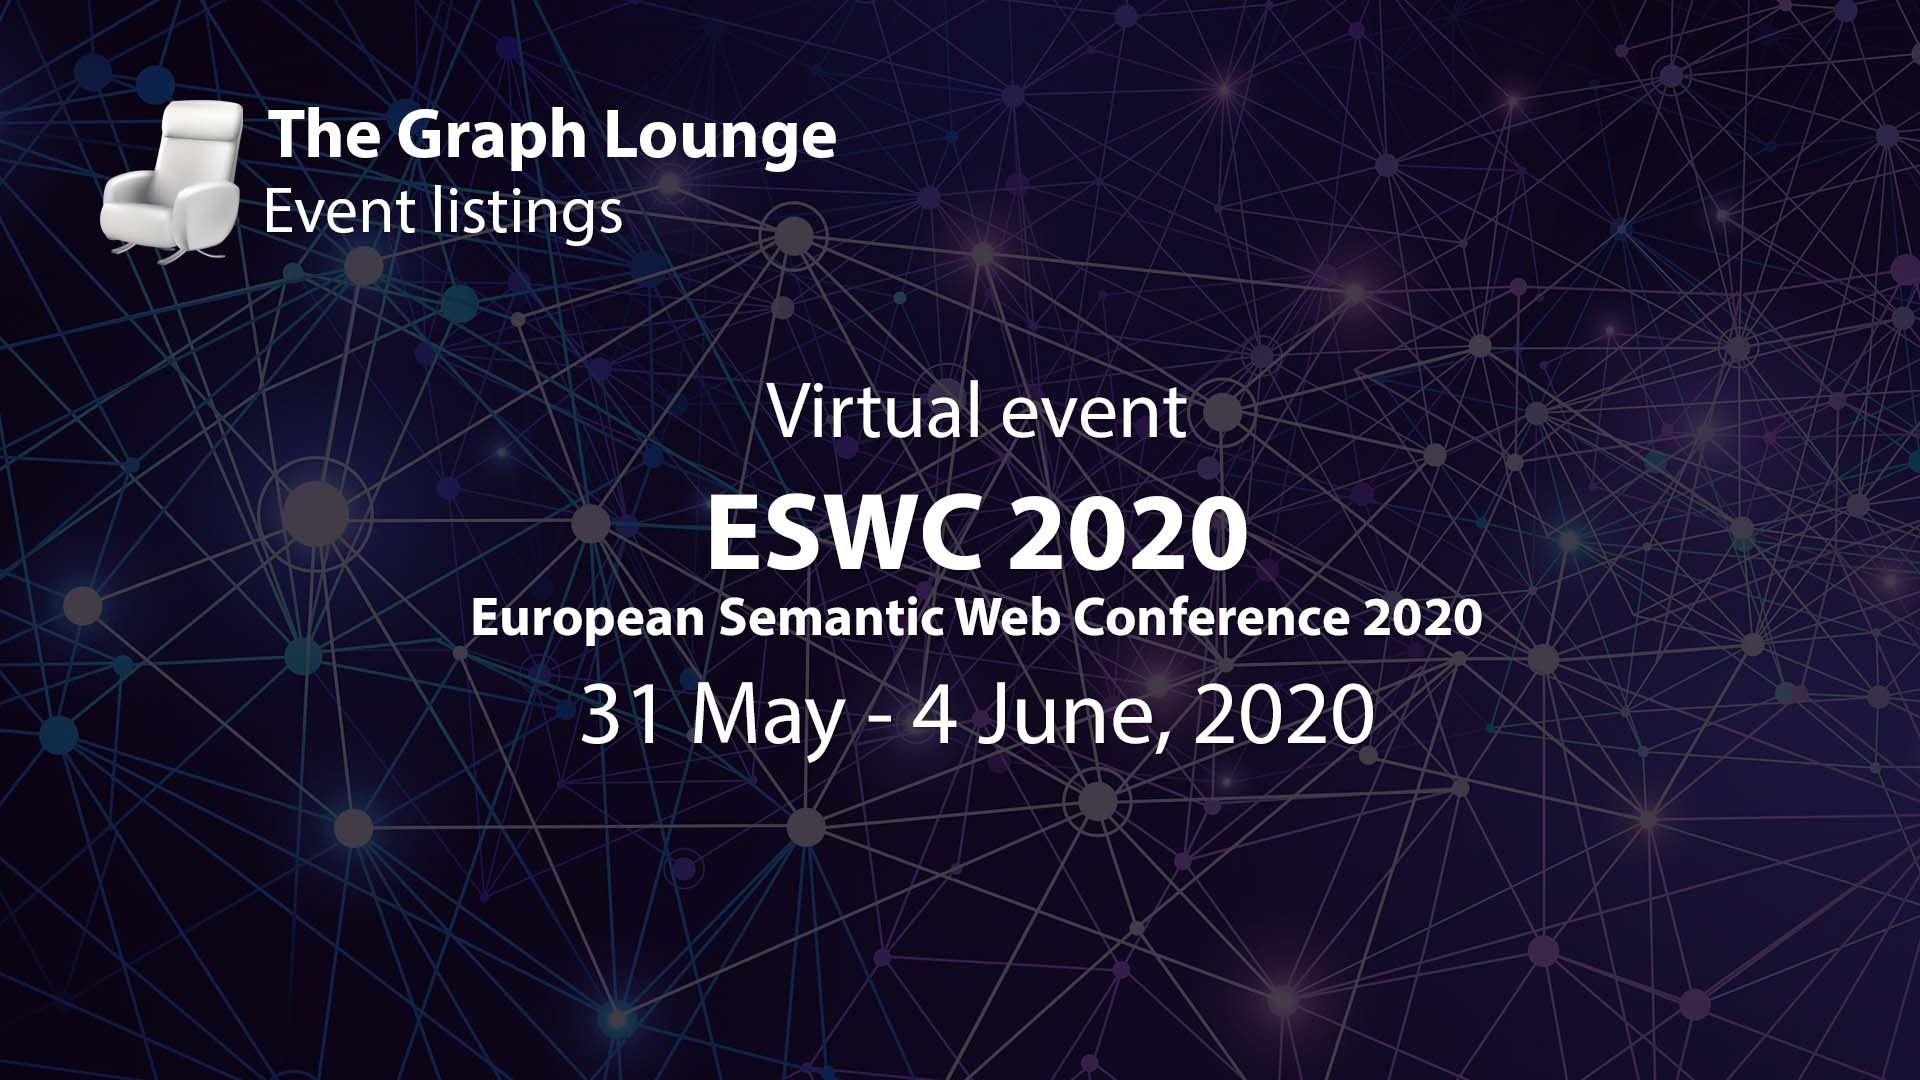 ESWC 2020 (Extended Semantic Web Conference 2020)